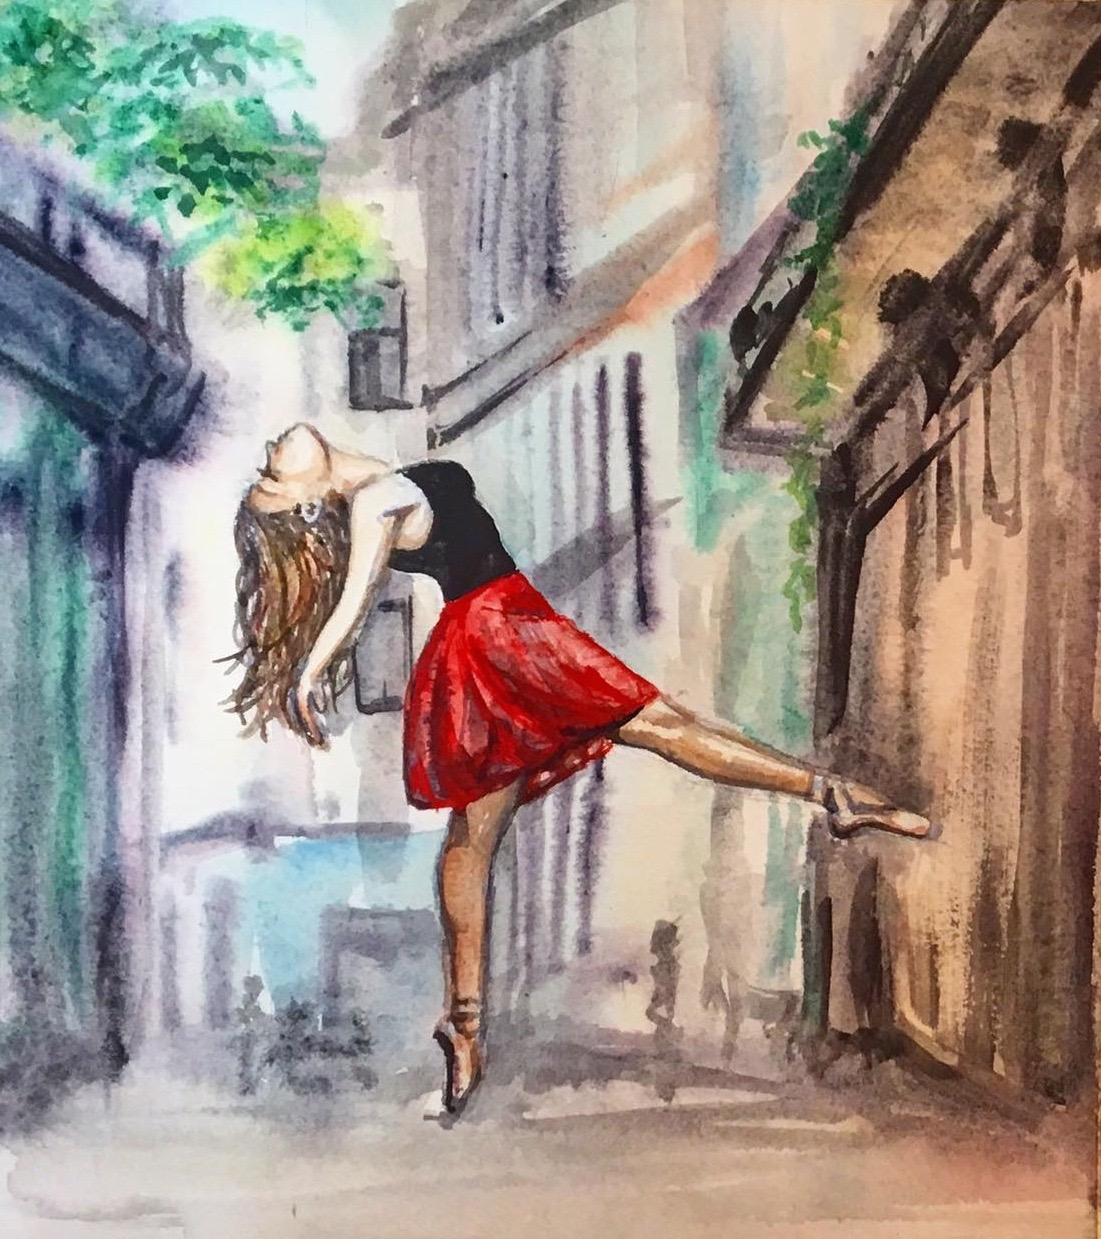 ballerina watercolor, ballerina dancer painting, dancer painting, dancer watercolor